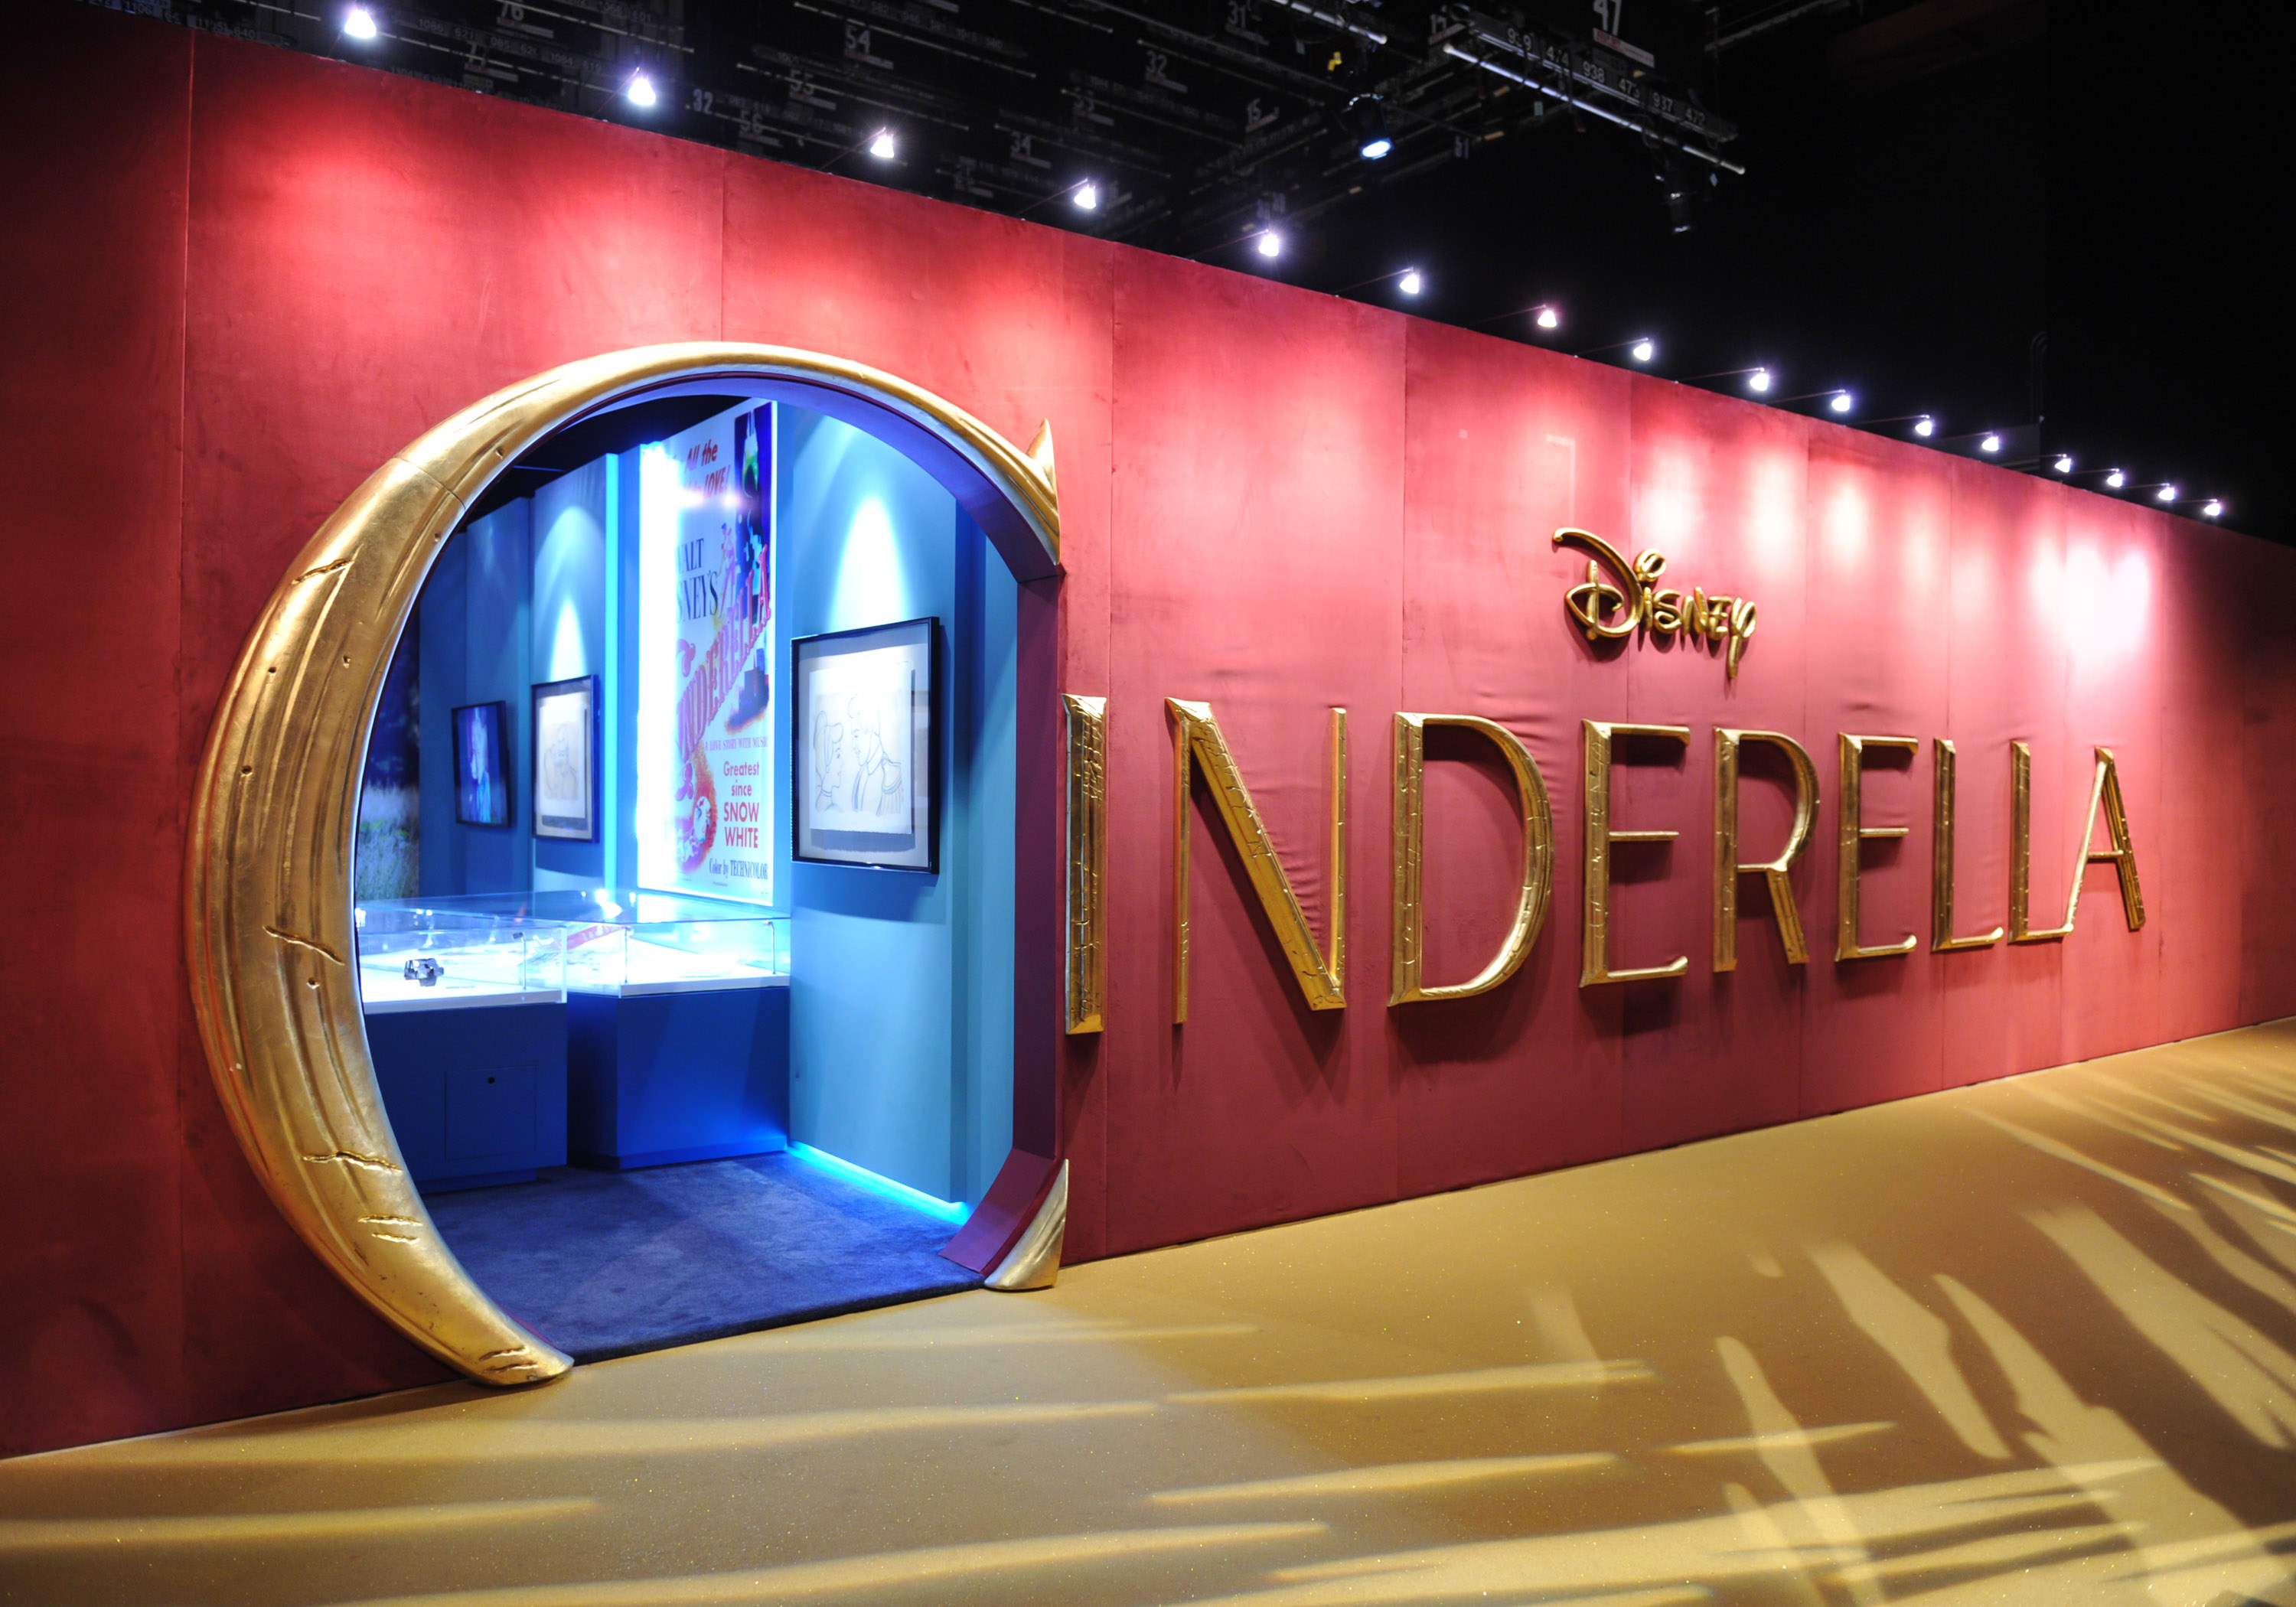 At the entrance, some of the sketches, posters and artwork from the original 1950 animated feature are visible just inside the door.